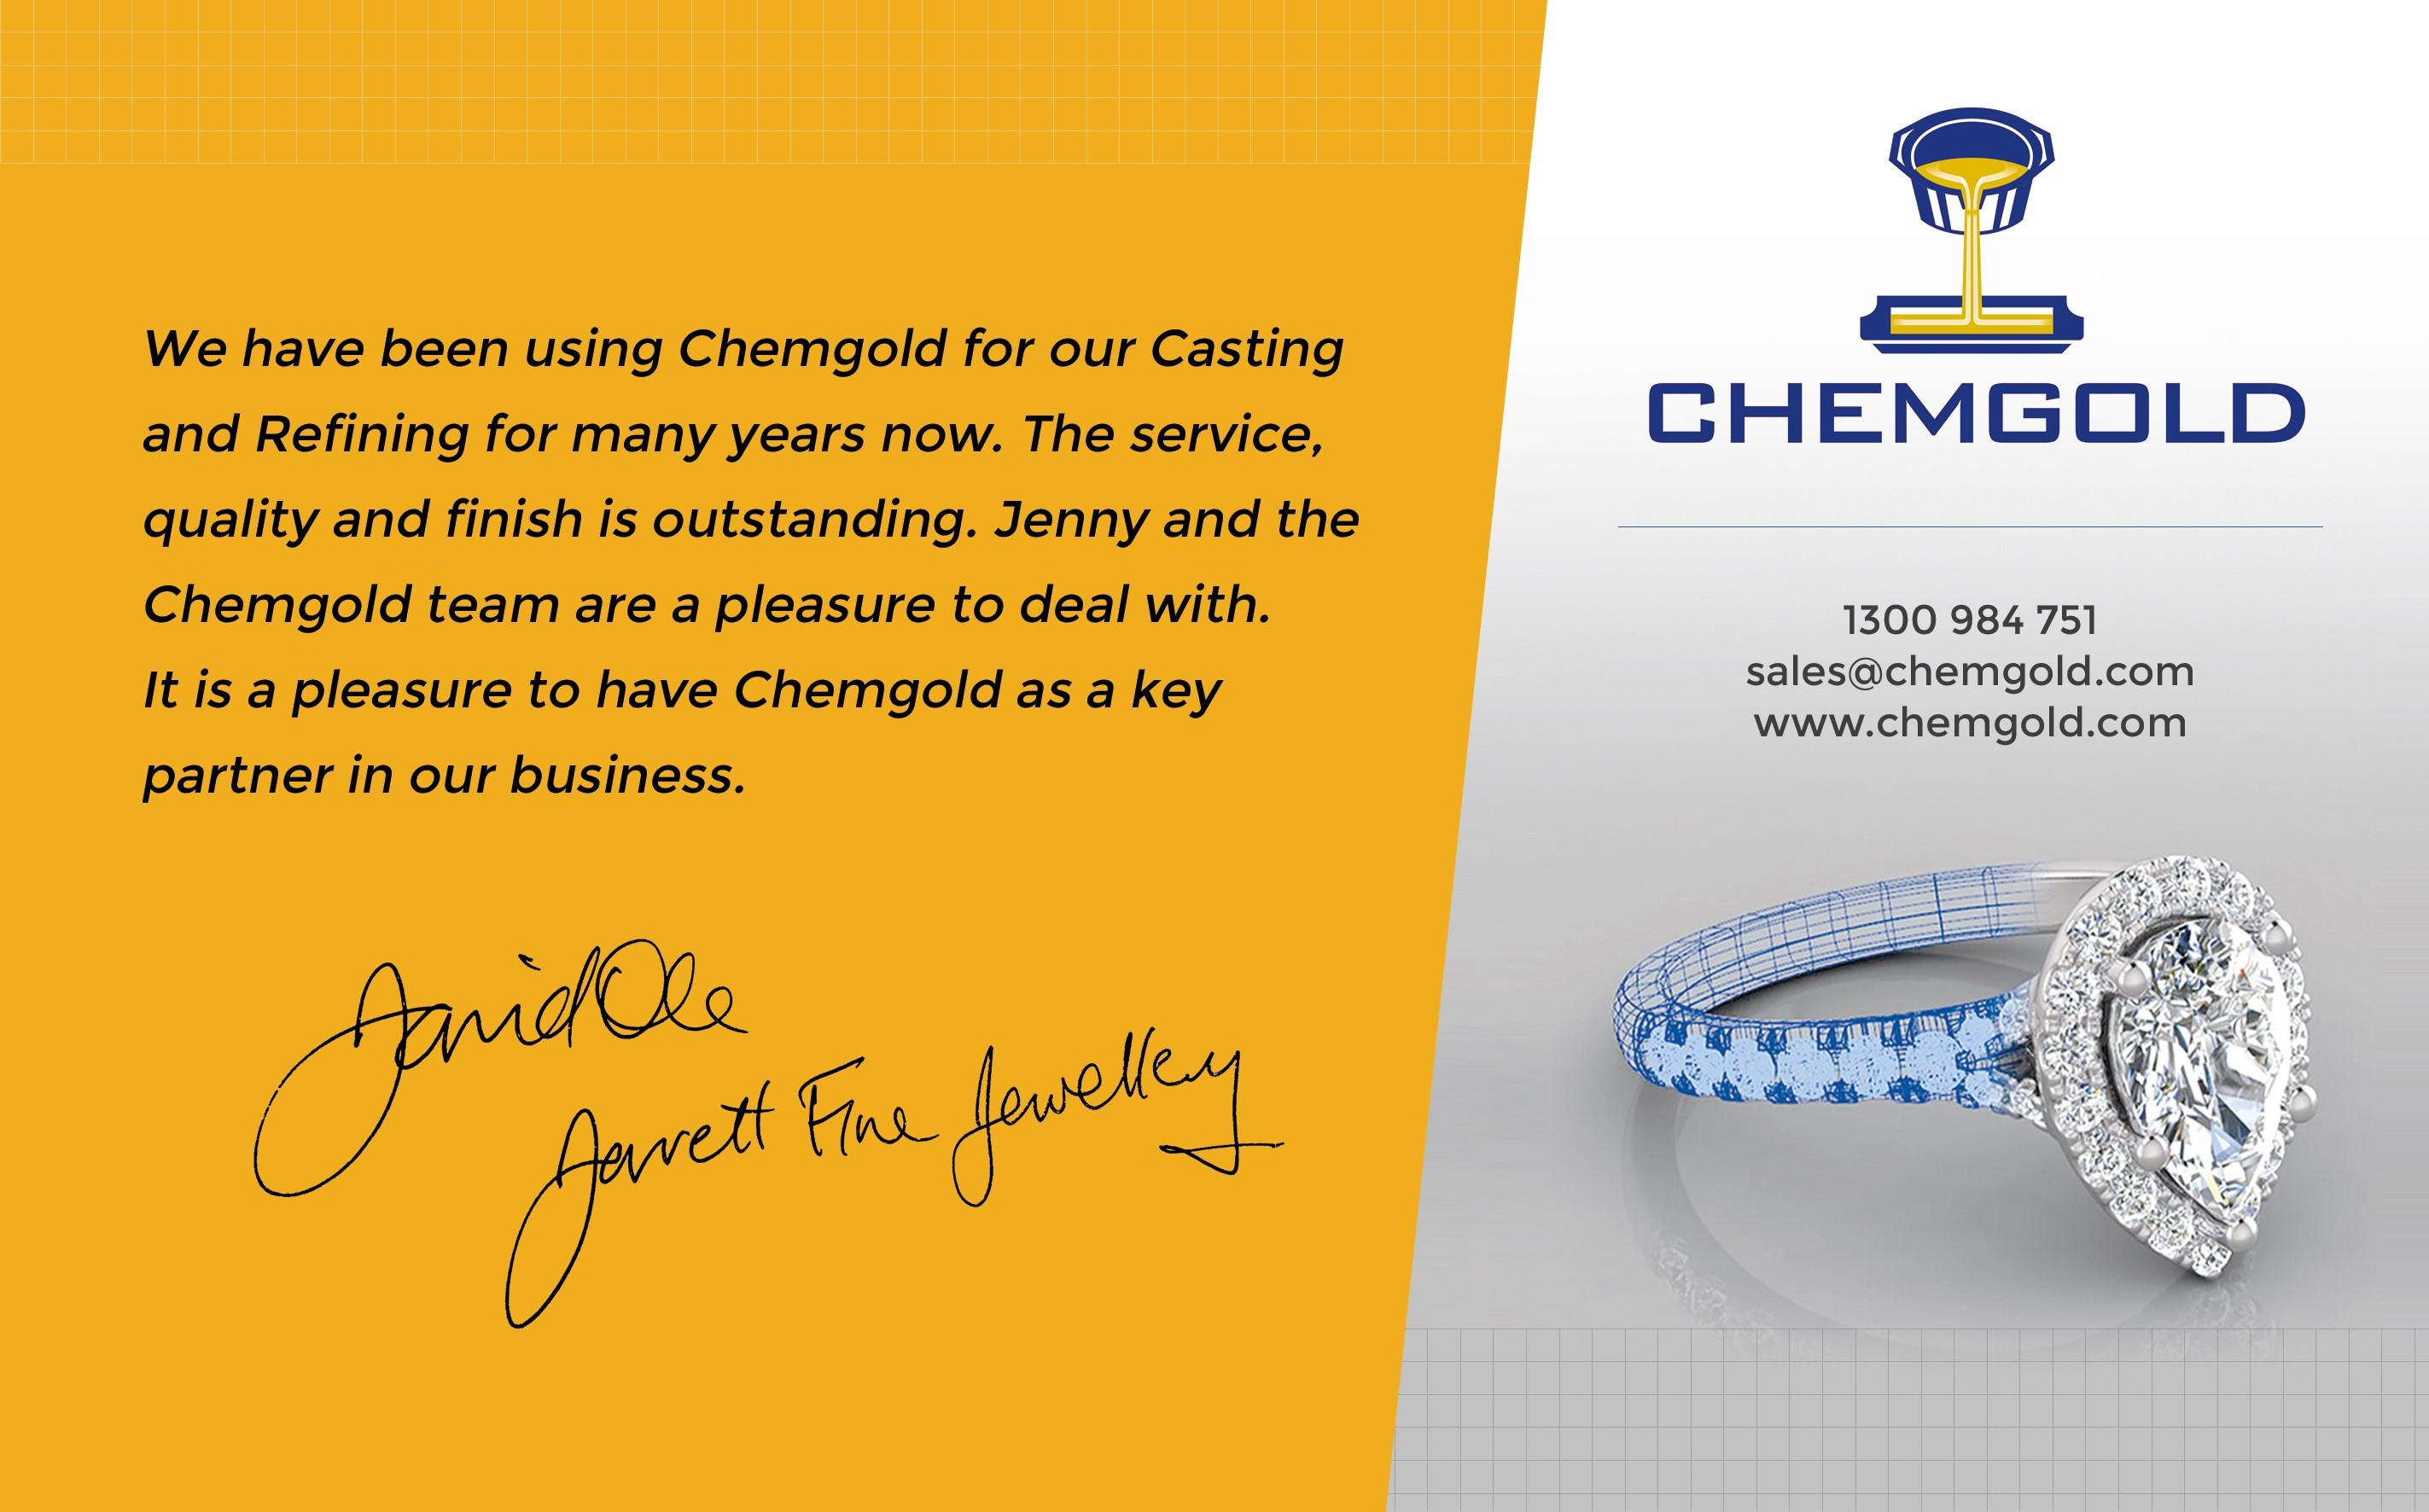 Chemgold Your Partner in Business